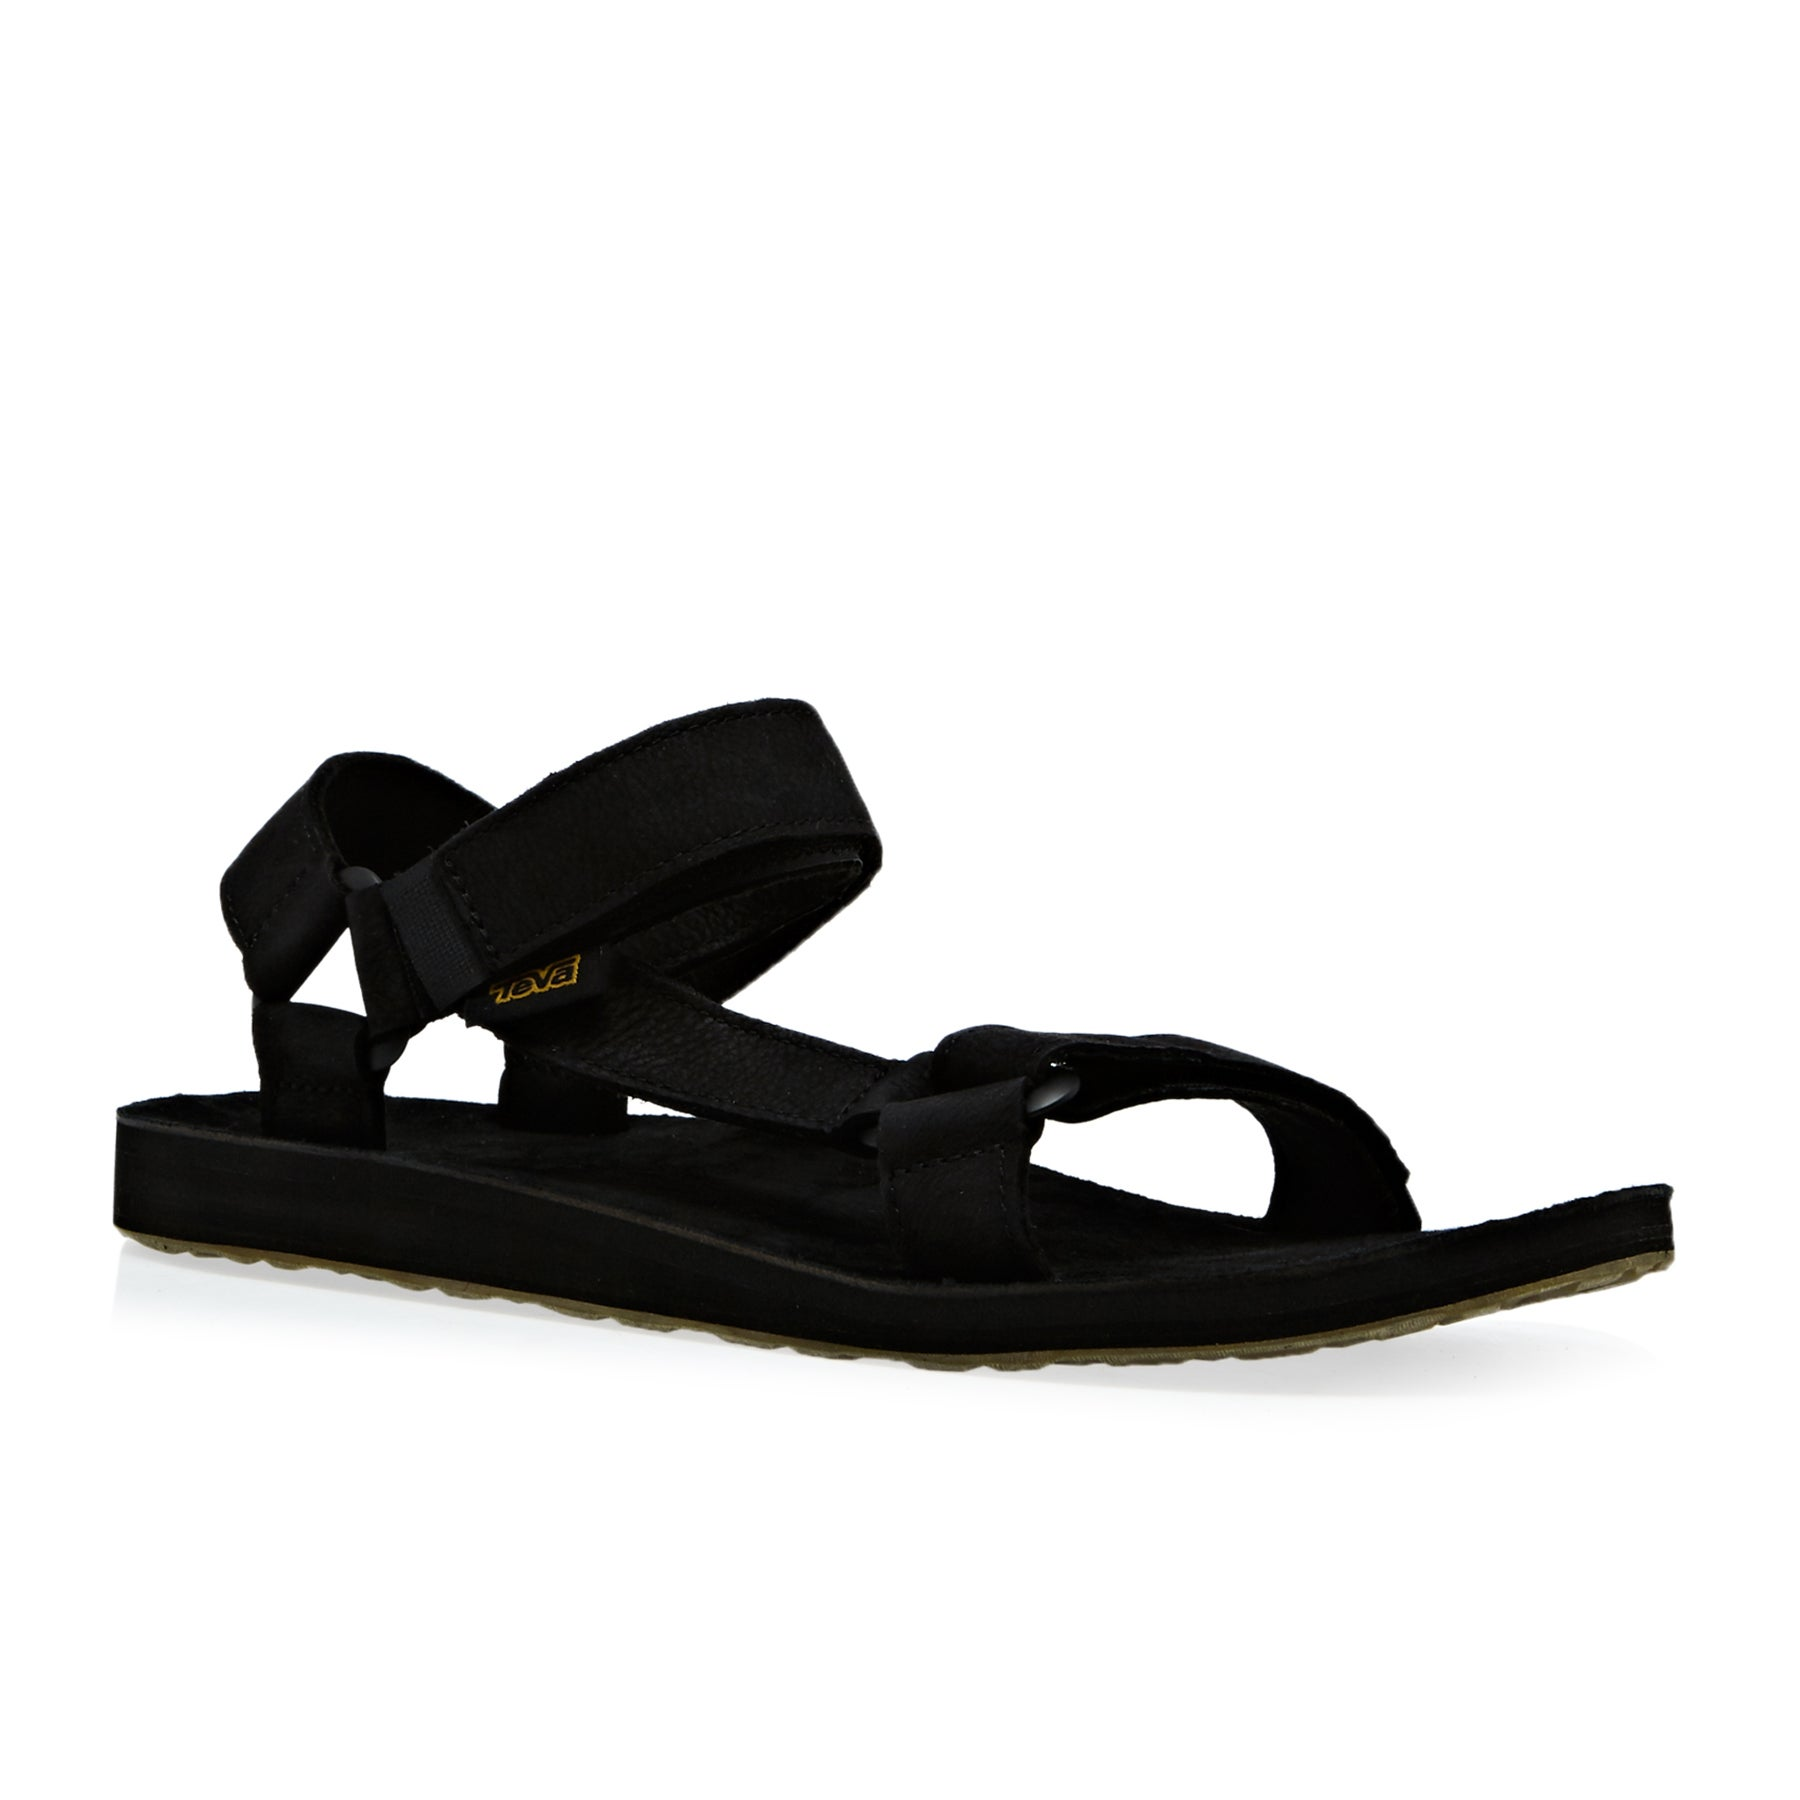 Sandalias Teva Original Universal Leather - Black